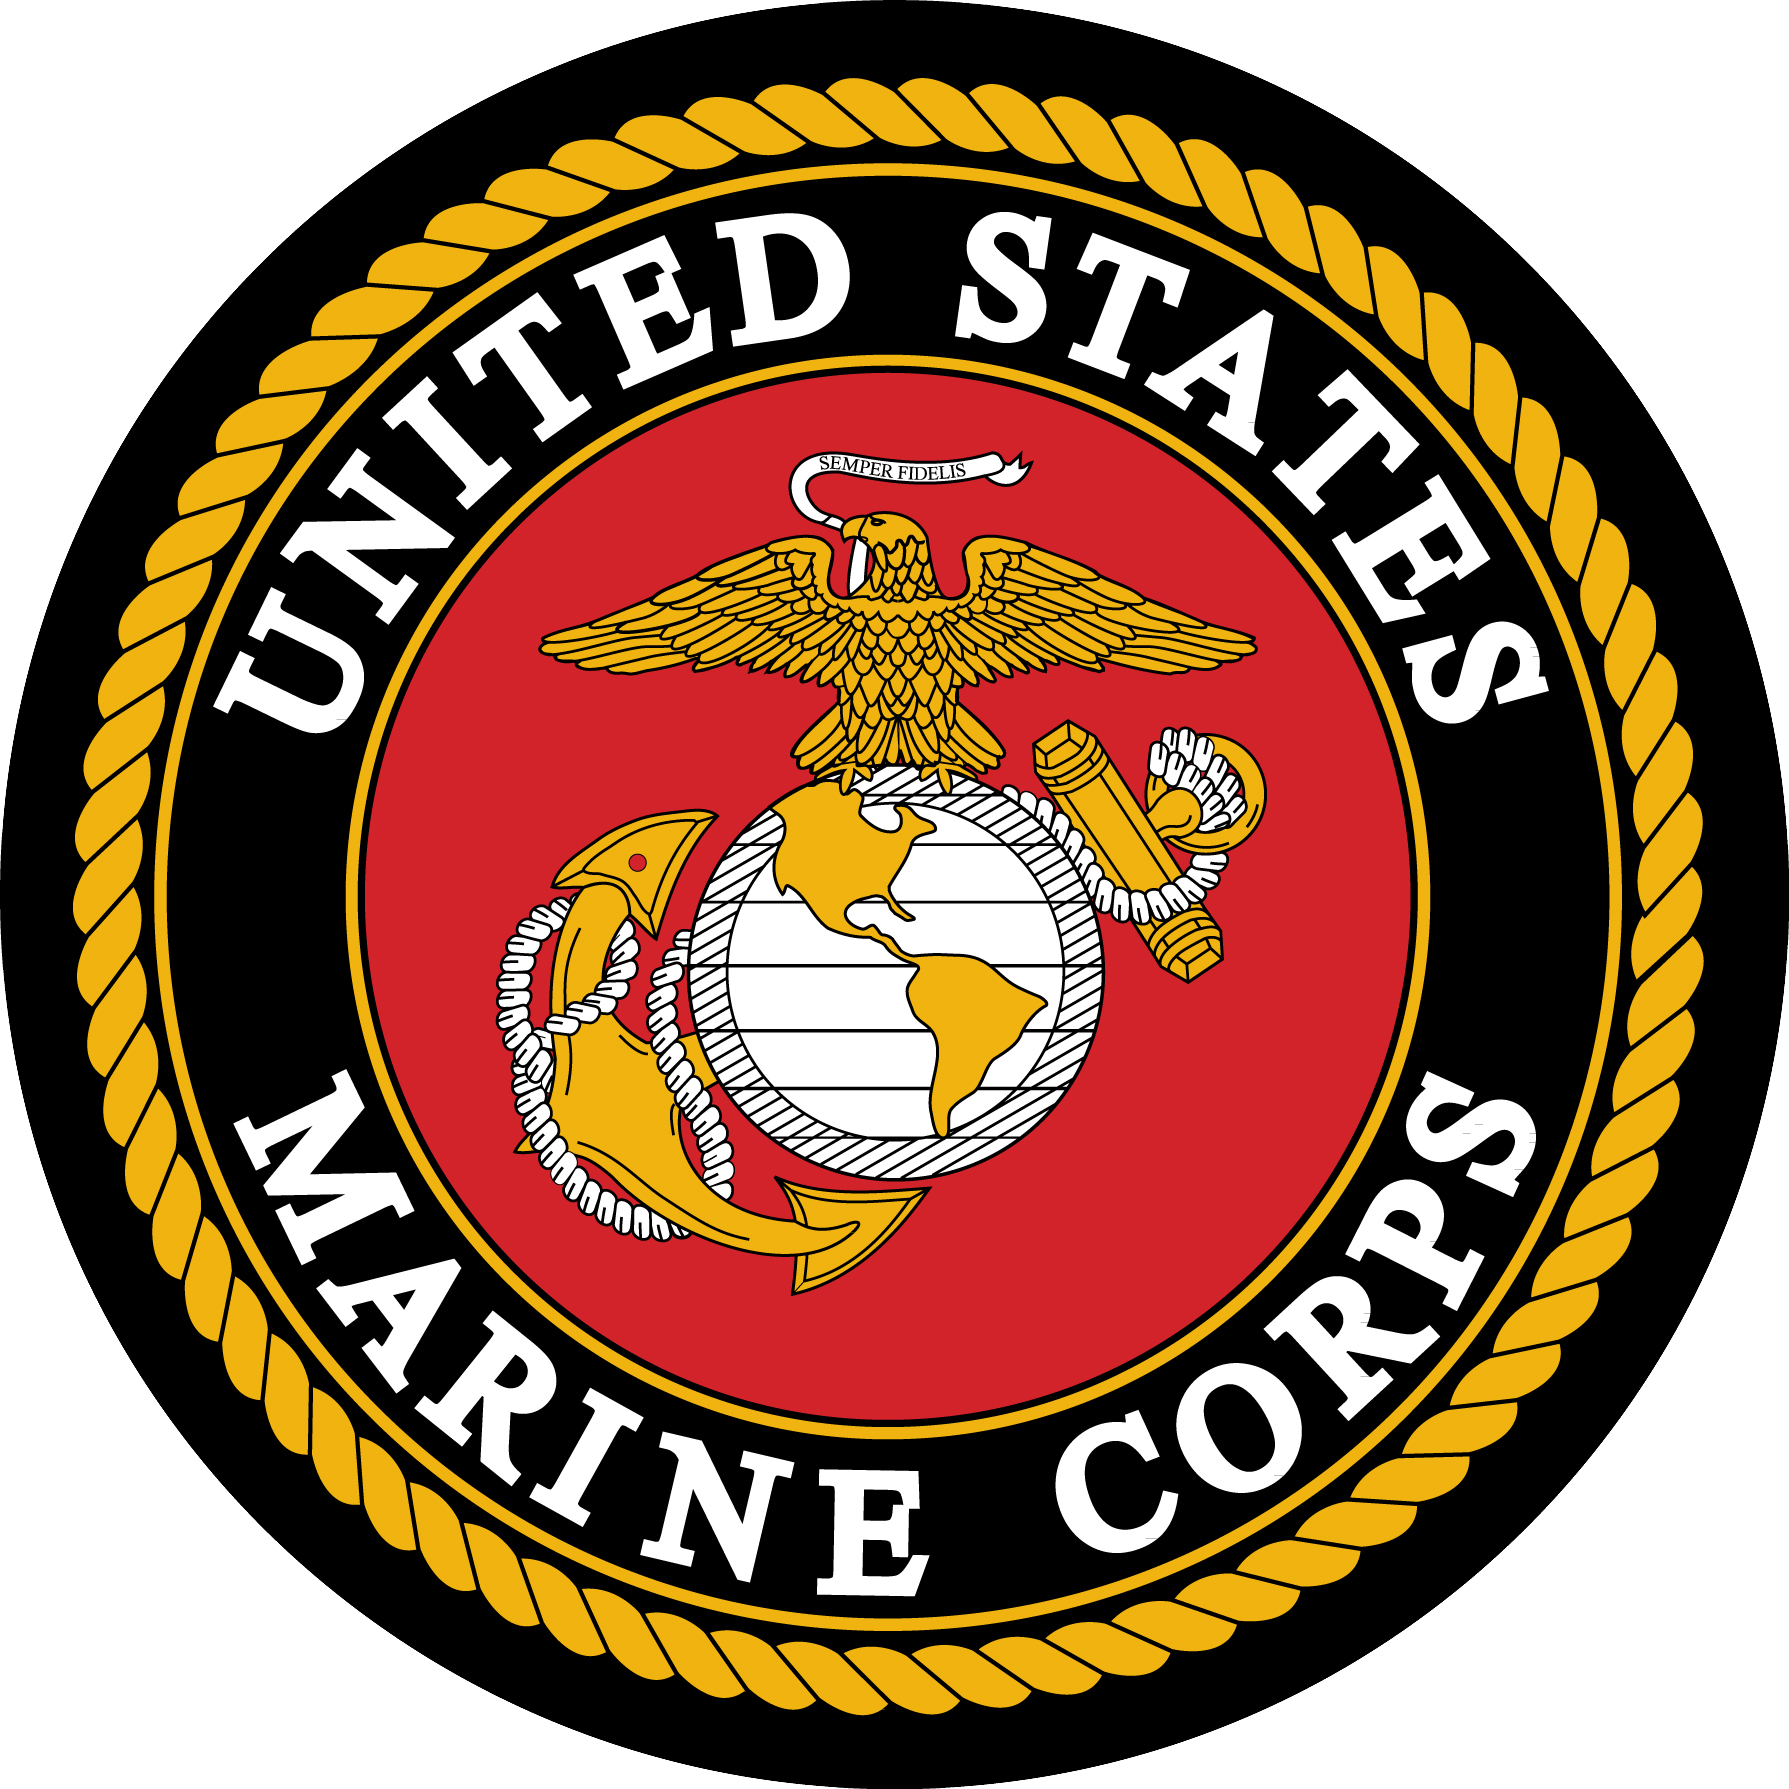 usmc-png-and-graphics-us-marine-corps-logo-clipart-1-png-1789-1789